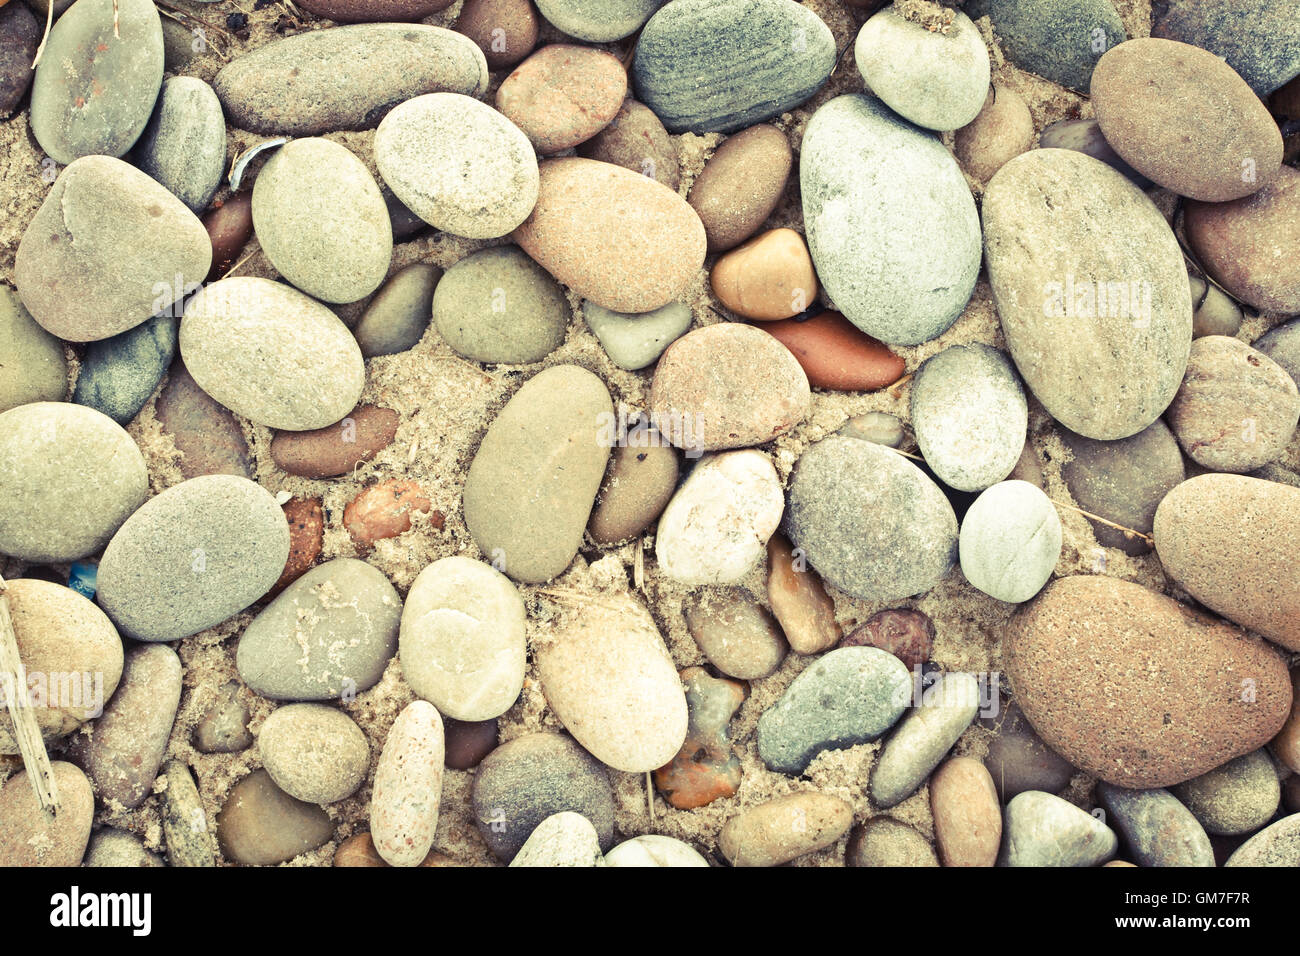 Circle Of Pebbles Stock Photos & Circle Of Pebbles Stock Images - Alamy